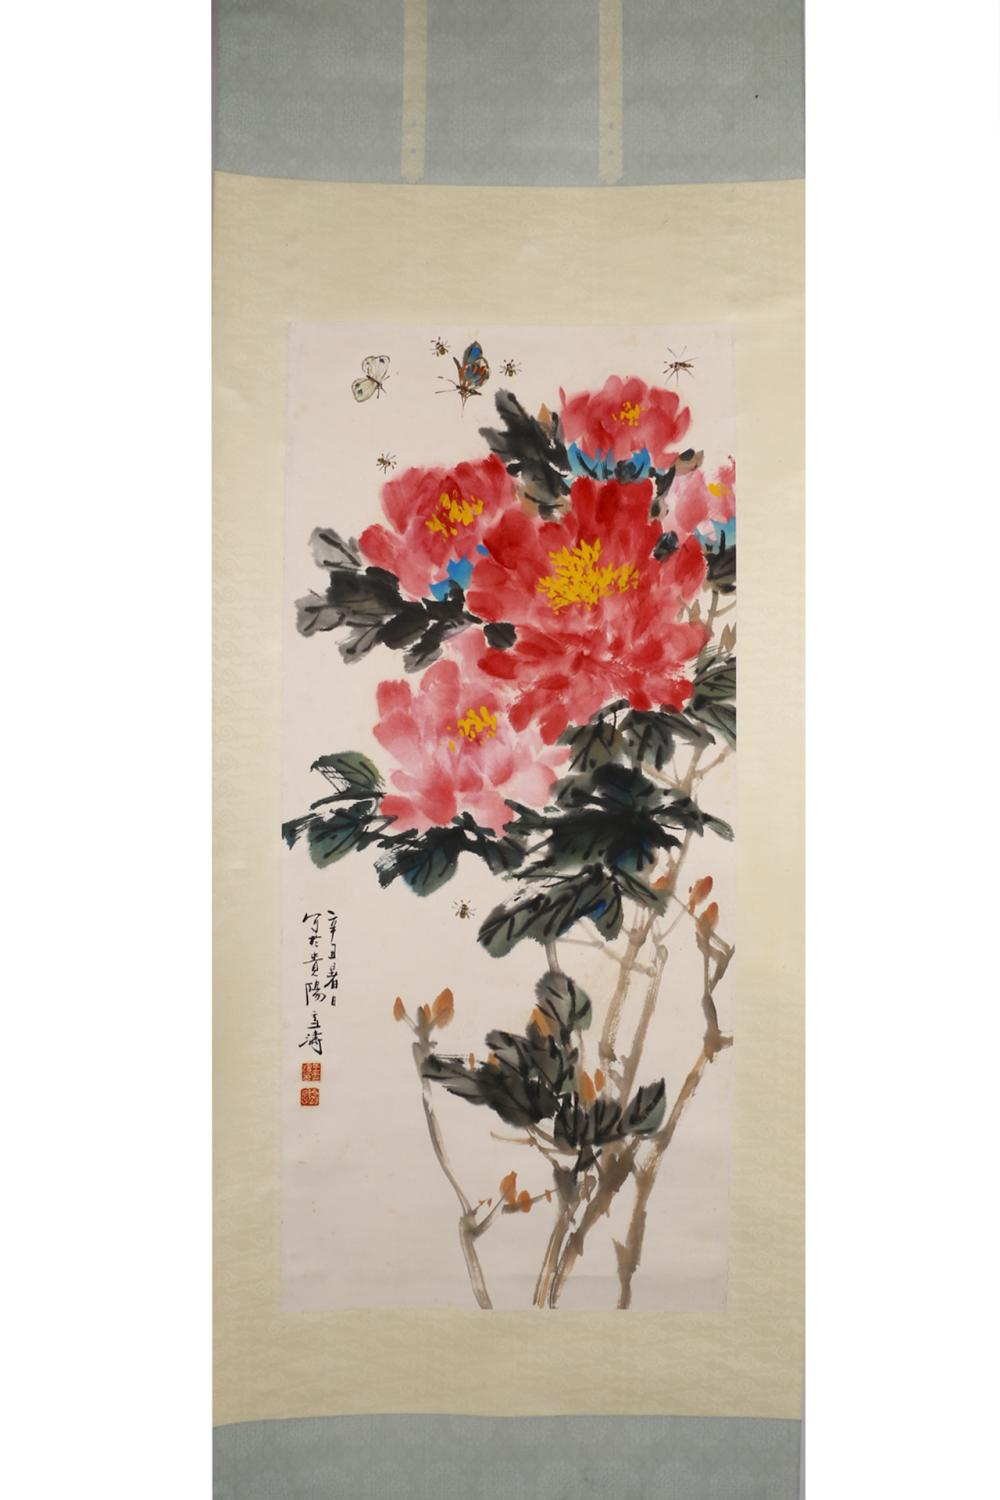 CHINESE INK AND COLOR PAINTING OF FLOWER BLOSSOM